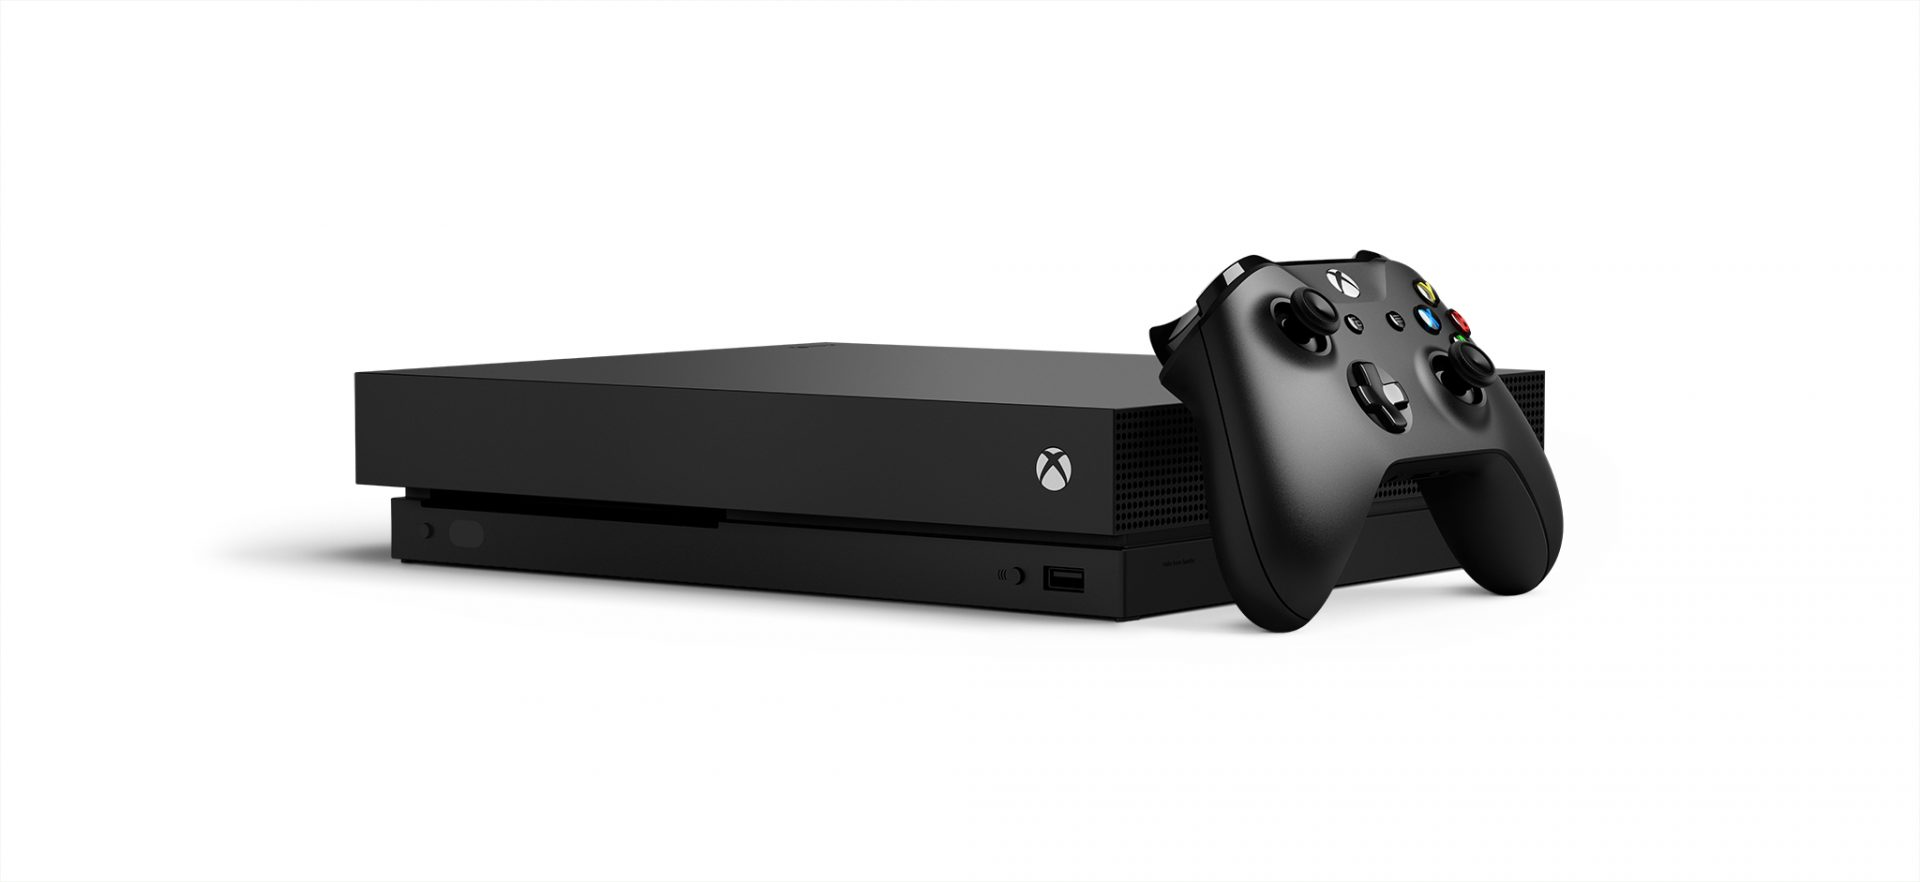 E3 2017: Project Scorpio is Revealed as Xbox One X!